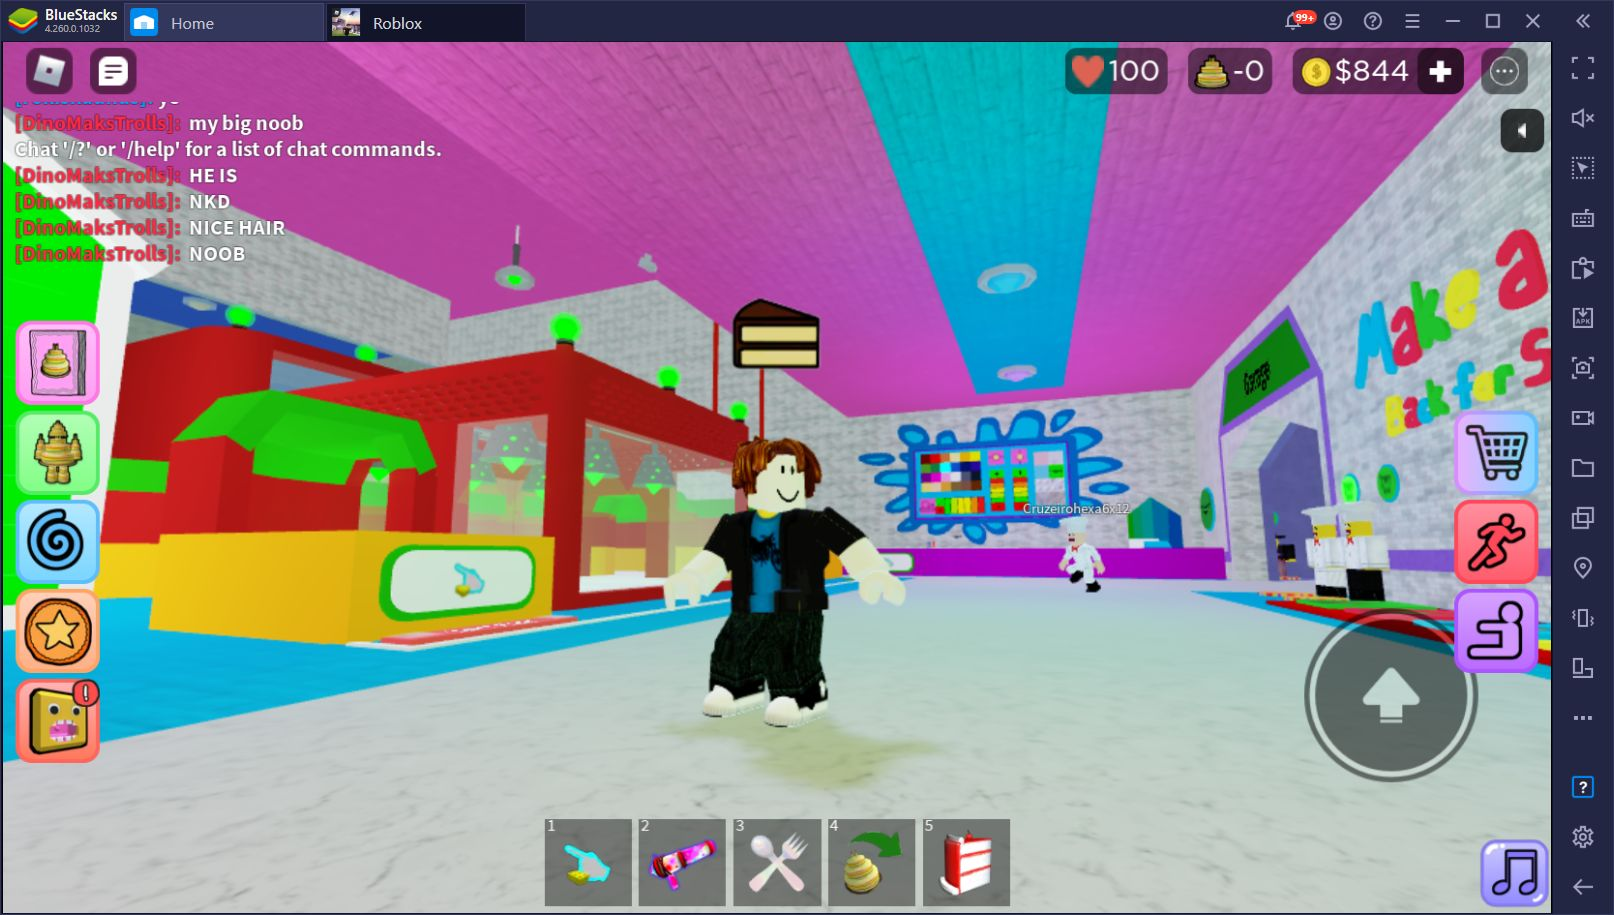 How to Play Roblox on PC with BlueStacks